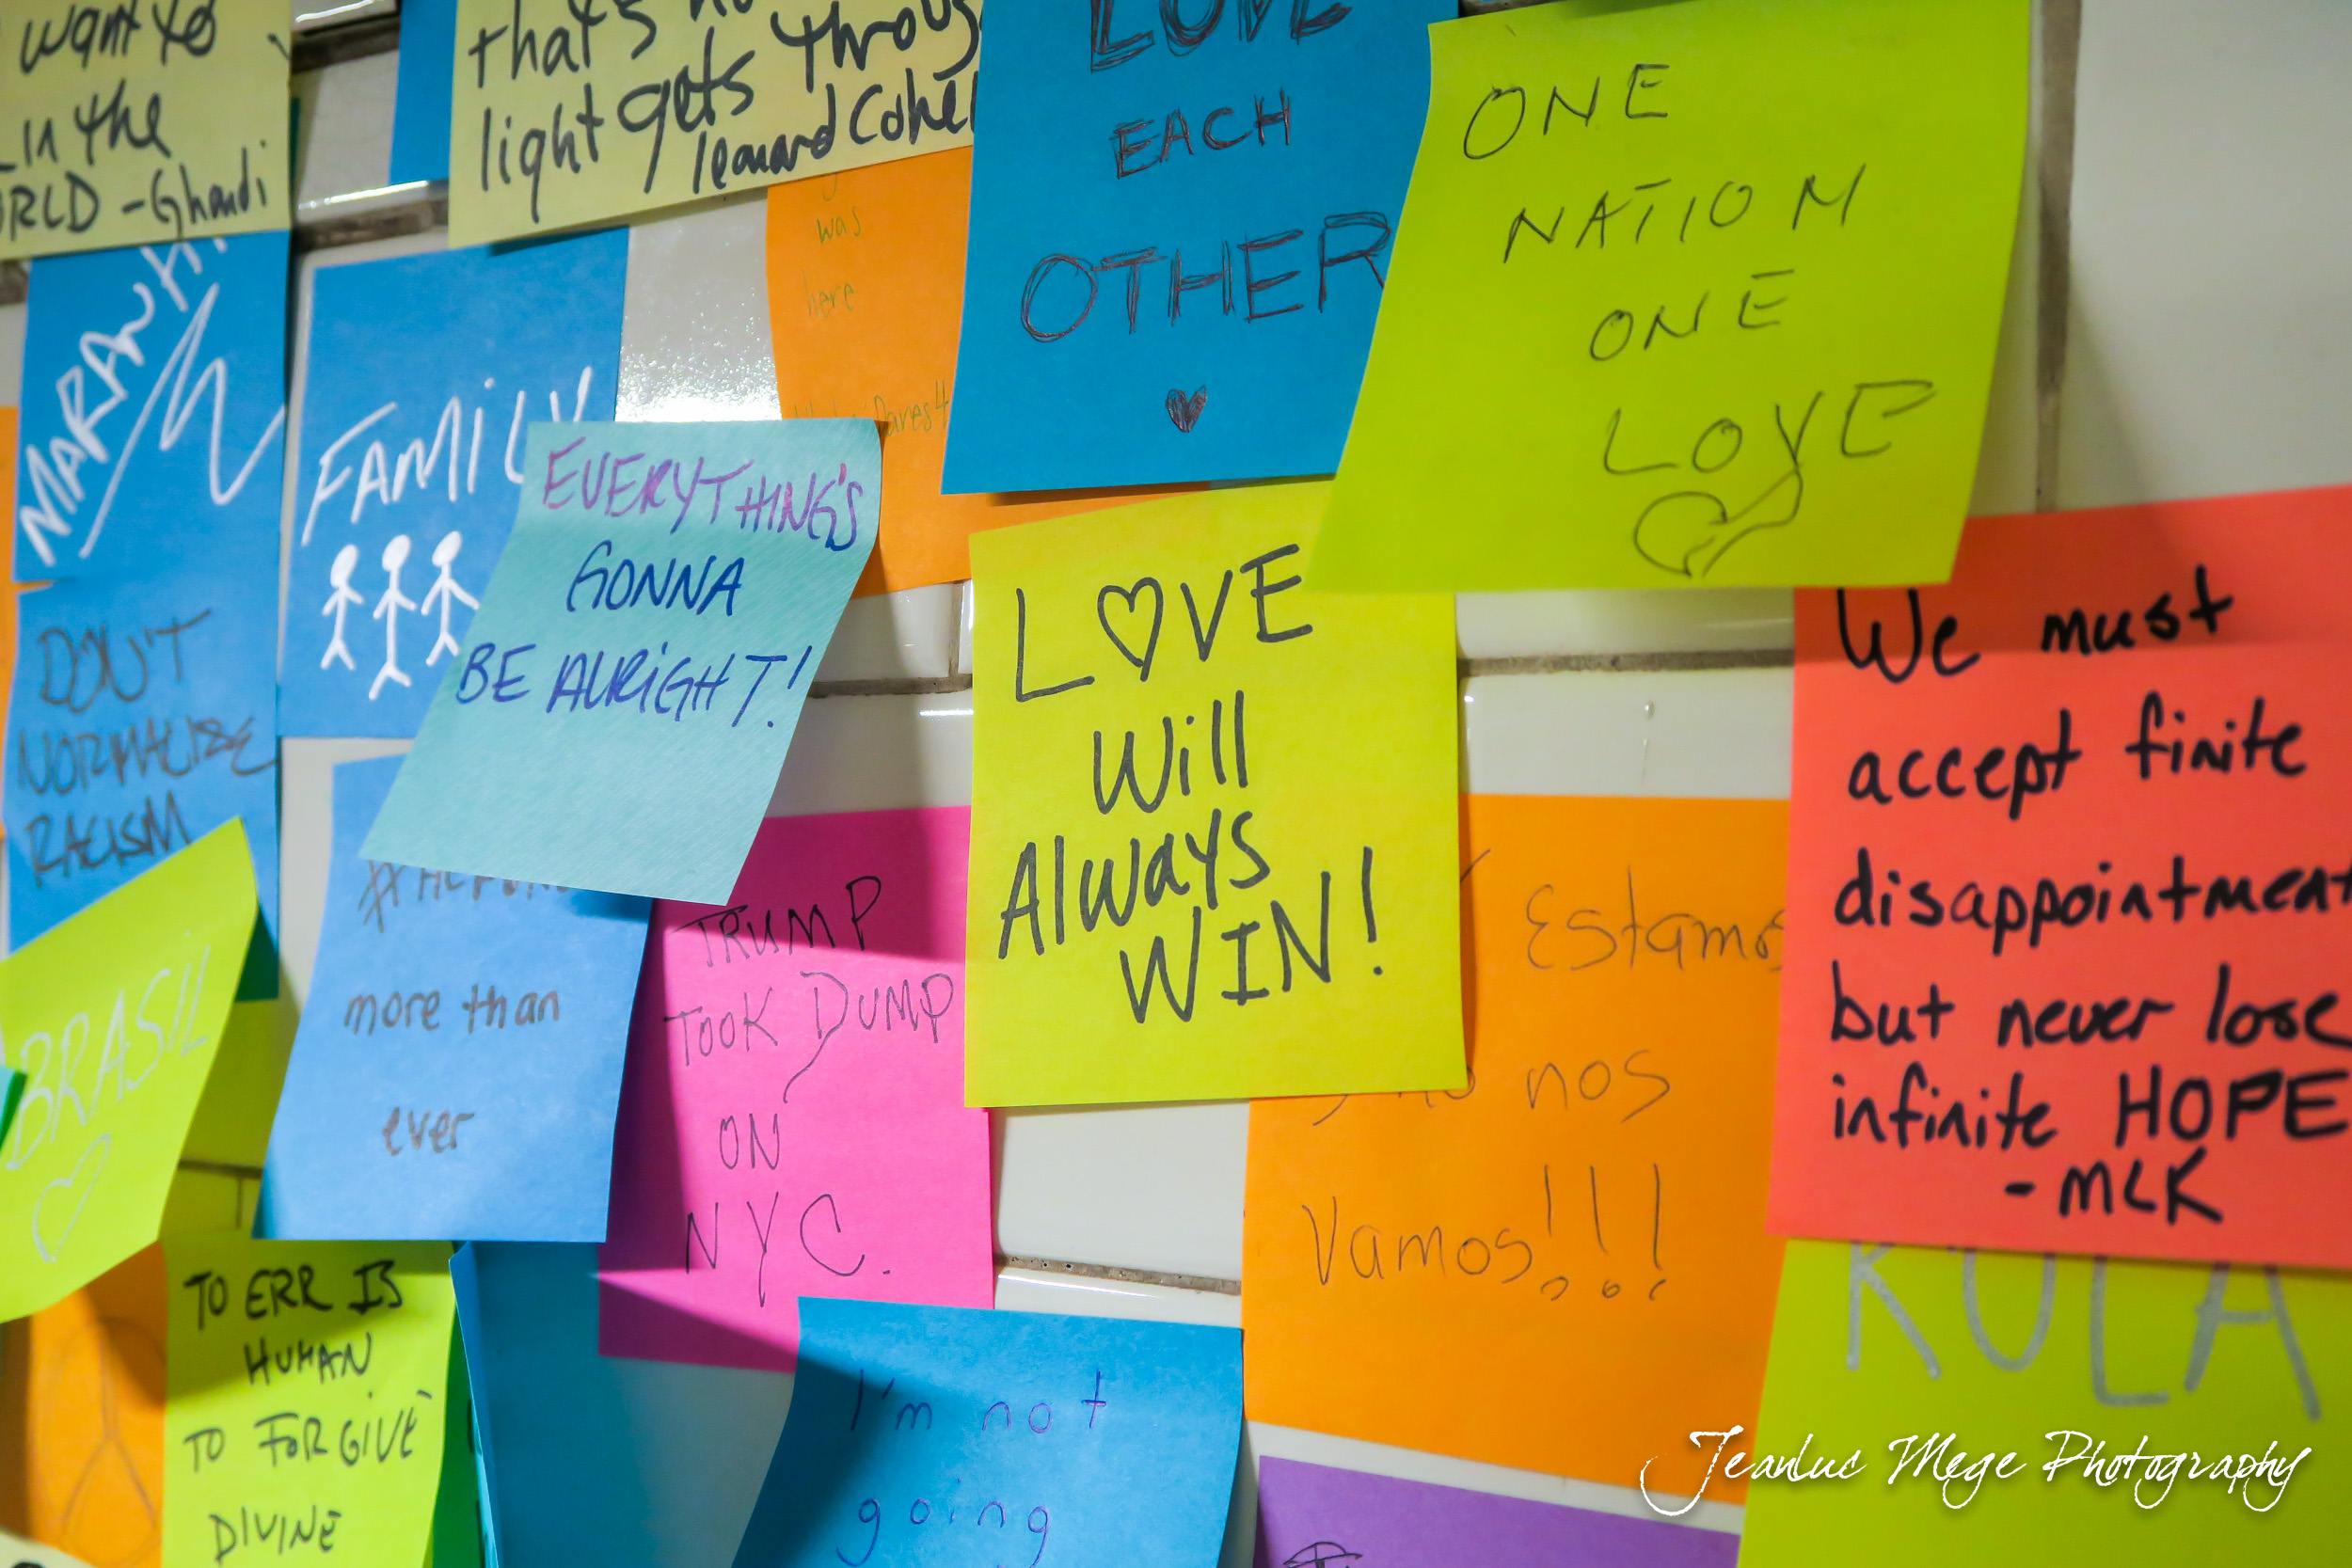 Love Wall Trump Union Square Nyc@jeanlucmege-0196.jpg